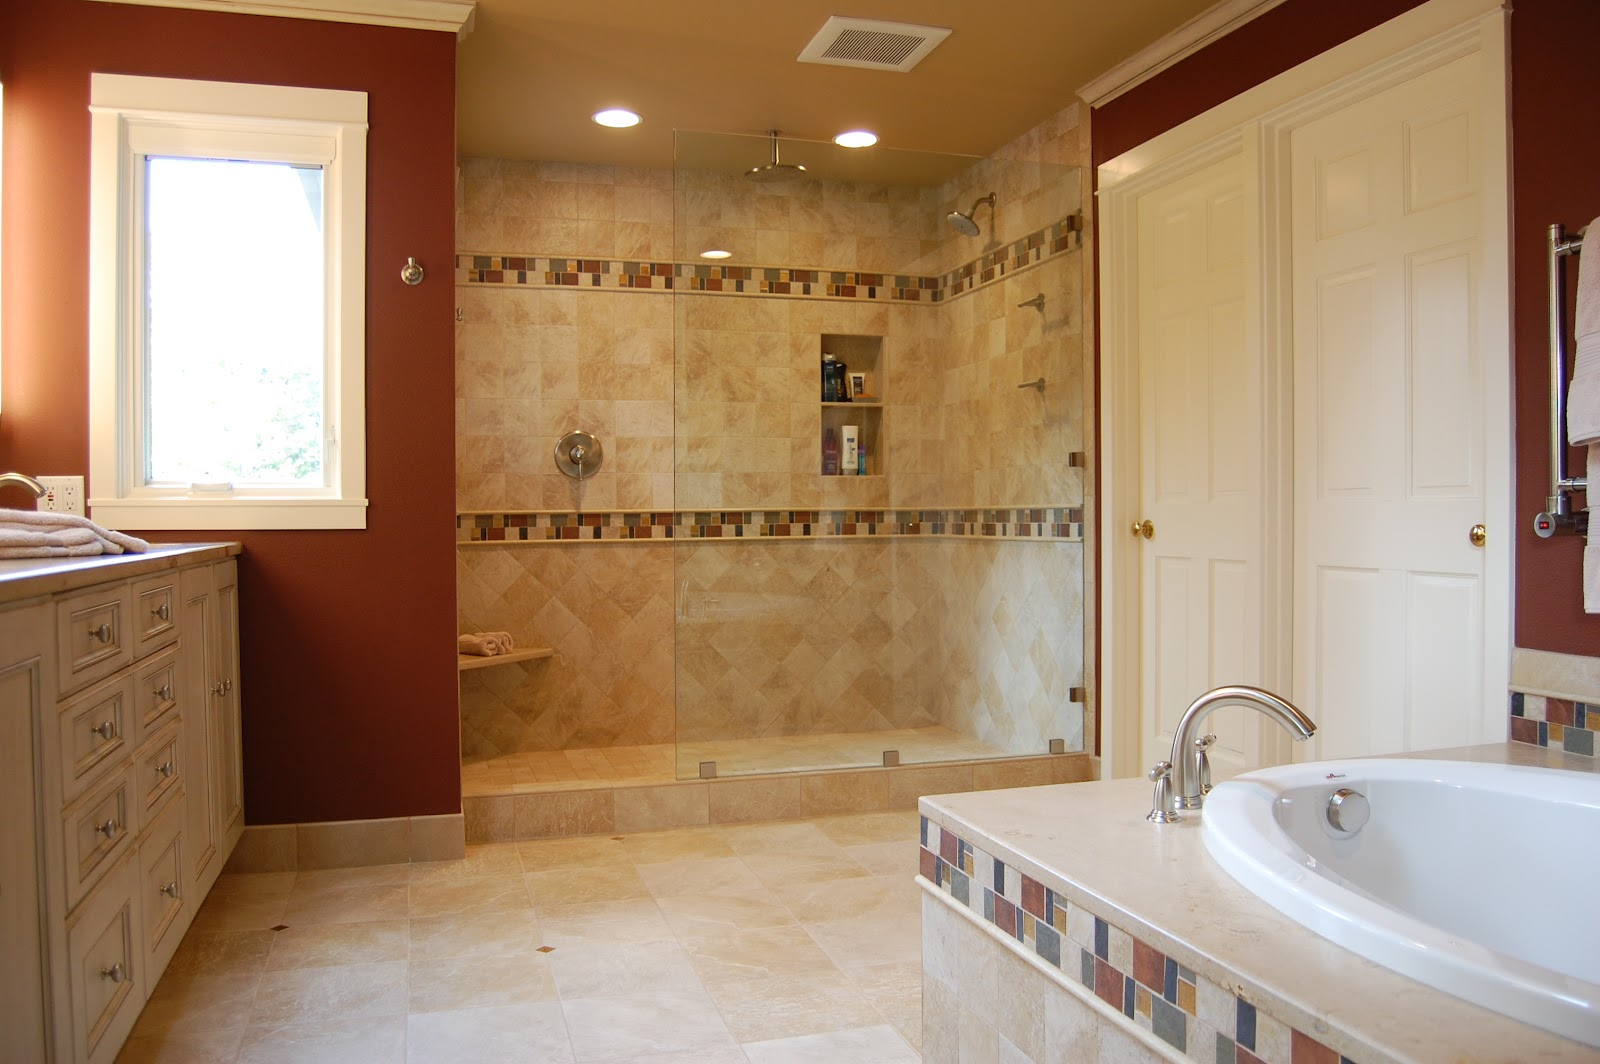 Small Scale Bathroom Remodeling That Adds Value To Your Home